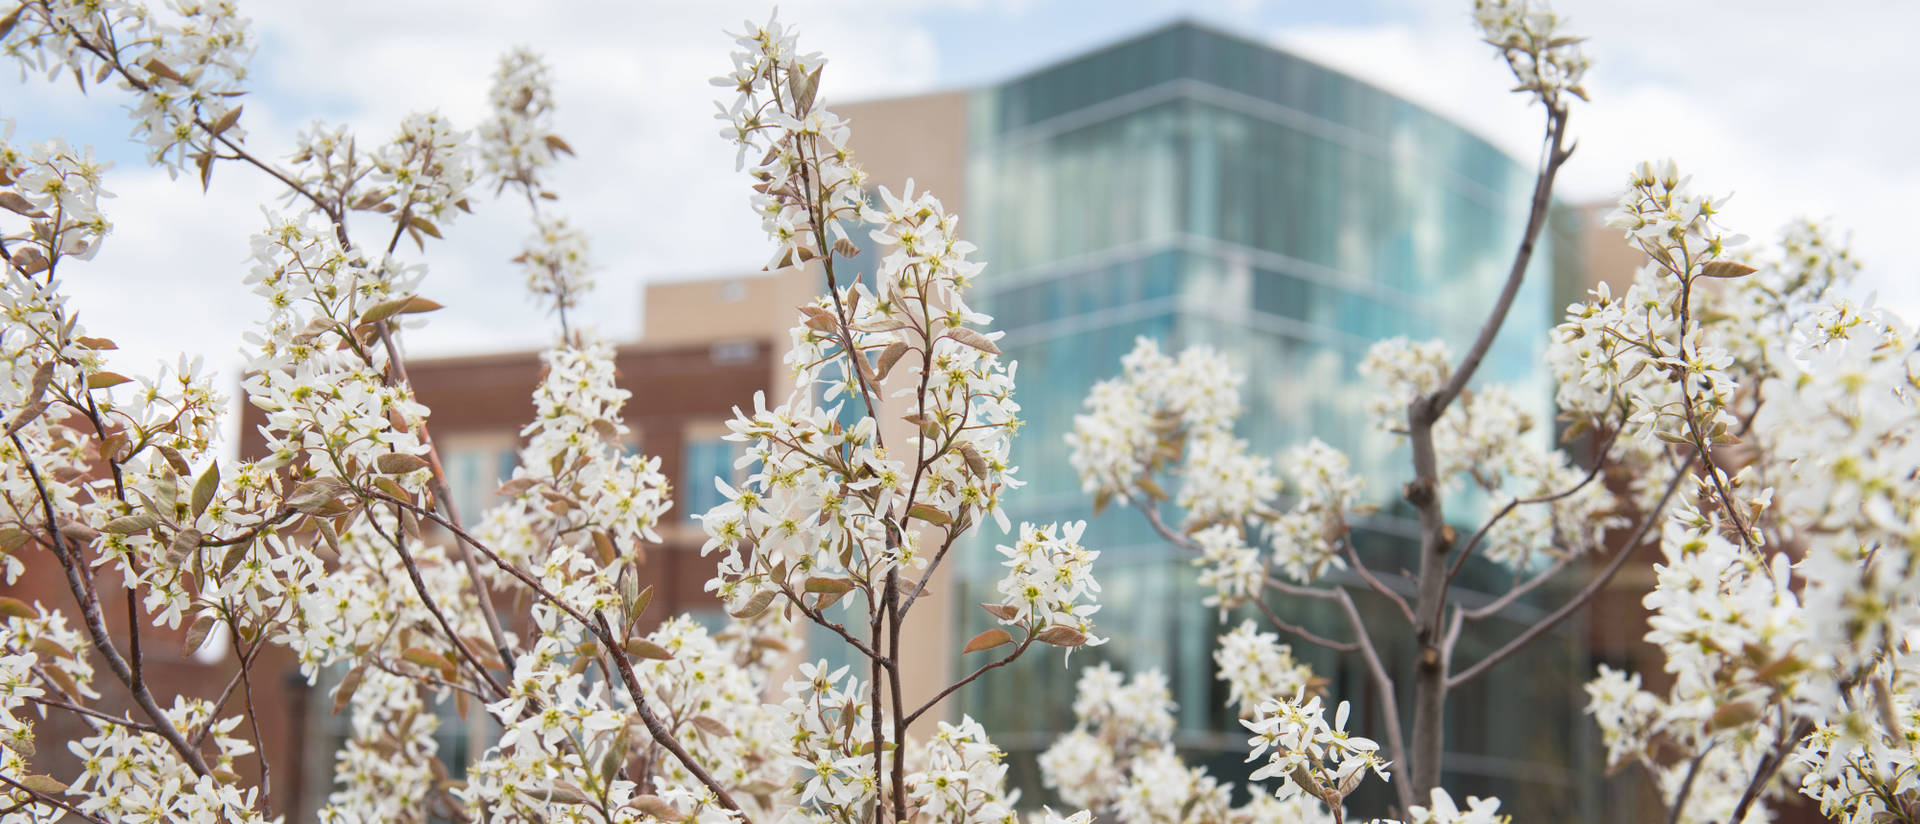 Flowering tree in front of Centennial Hall